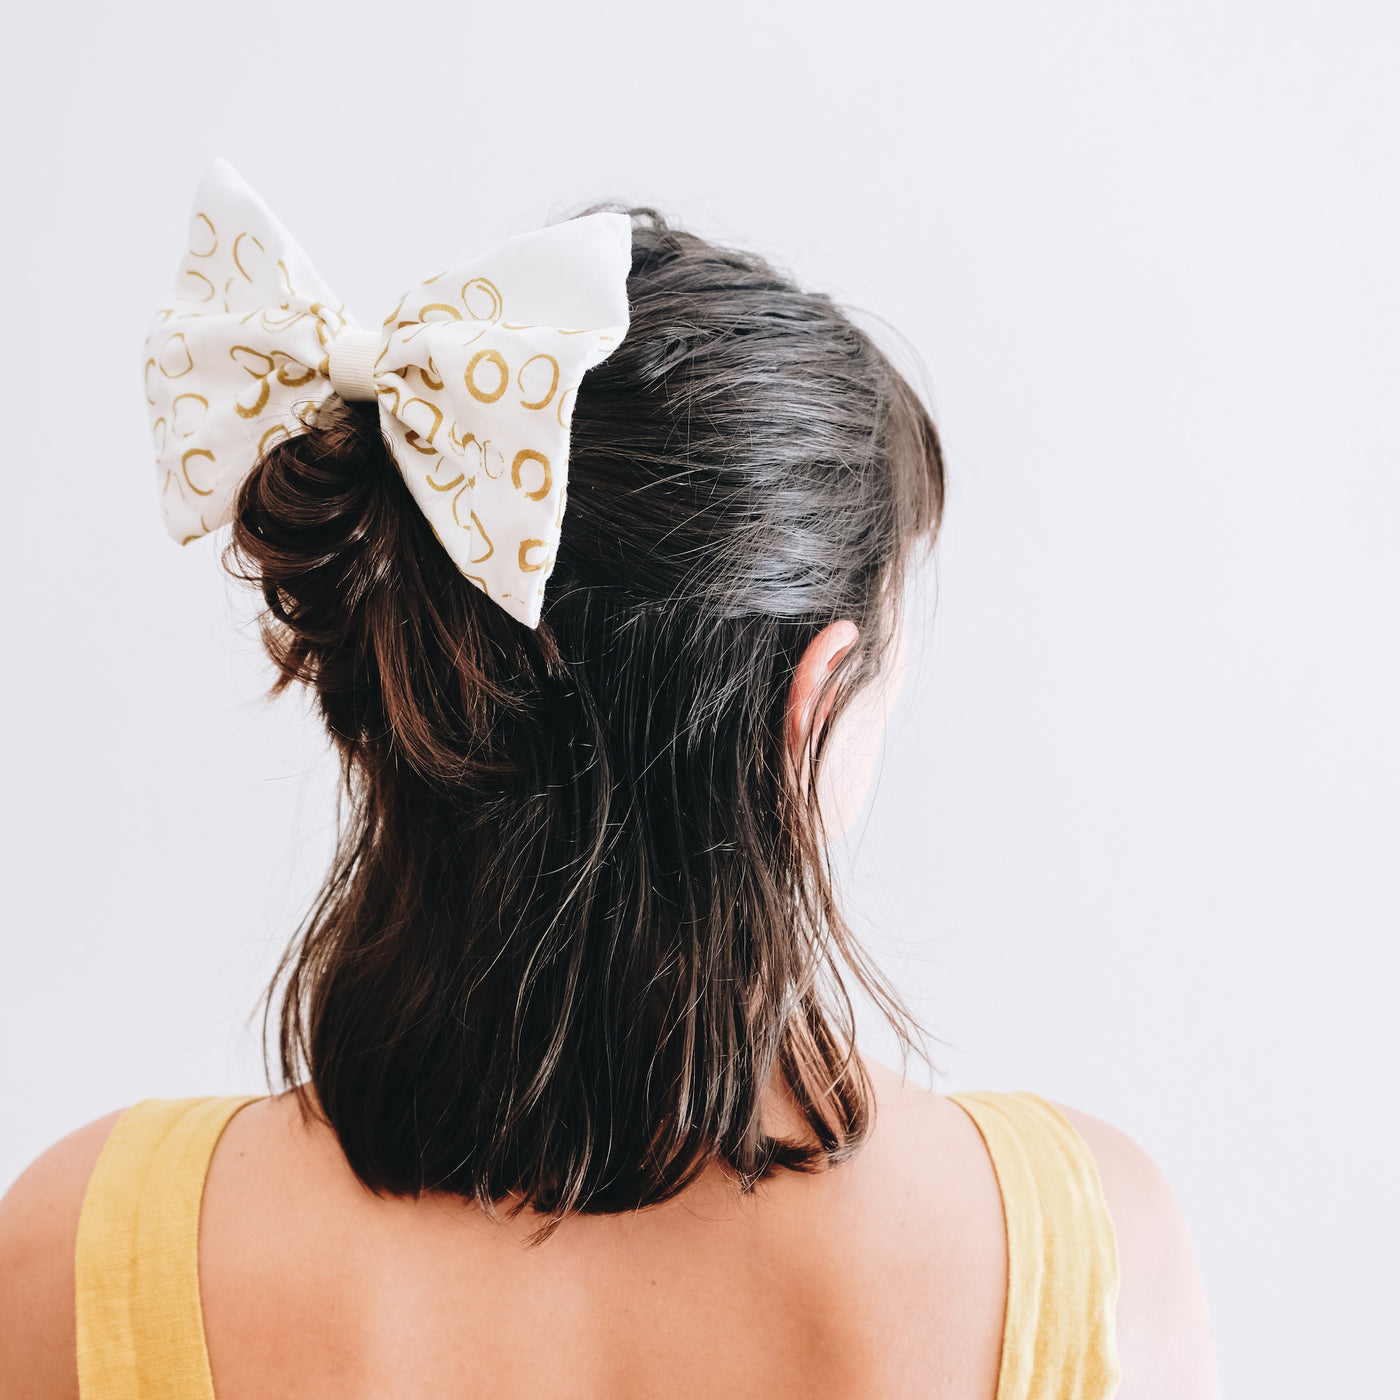 Up-cycled | Hair Bow Slide